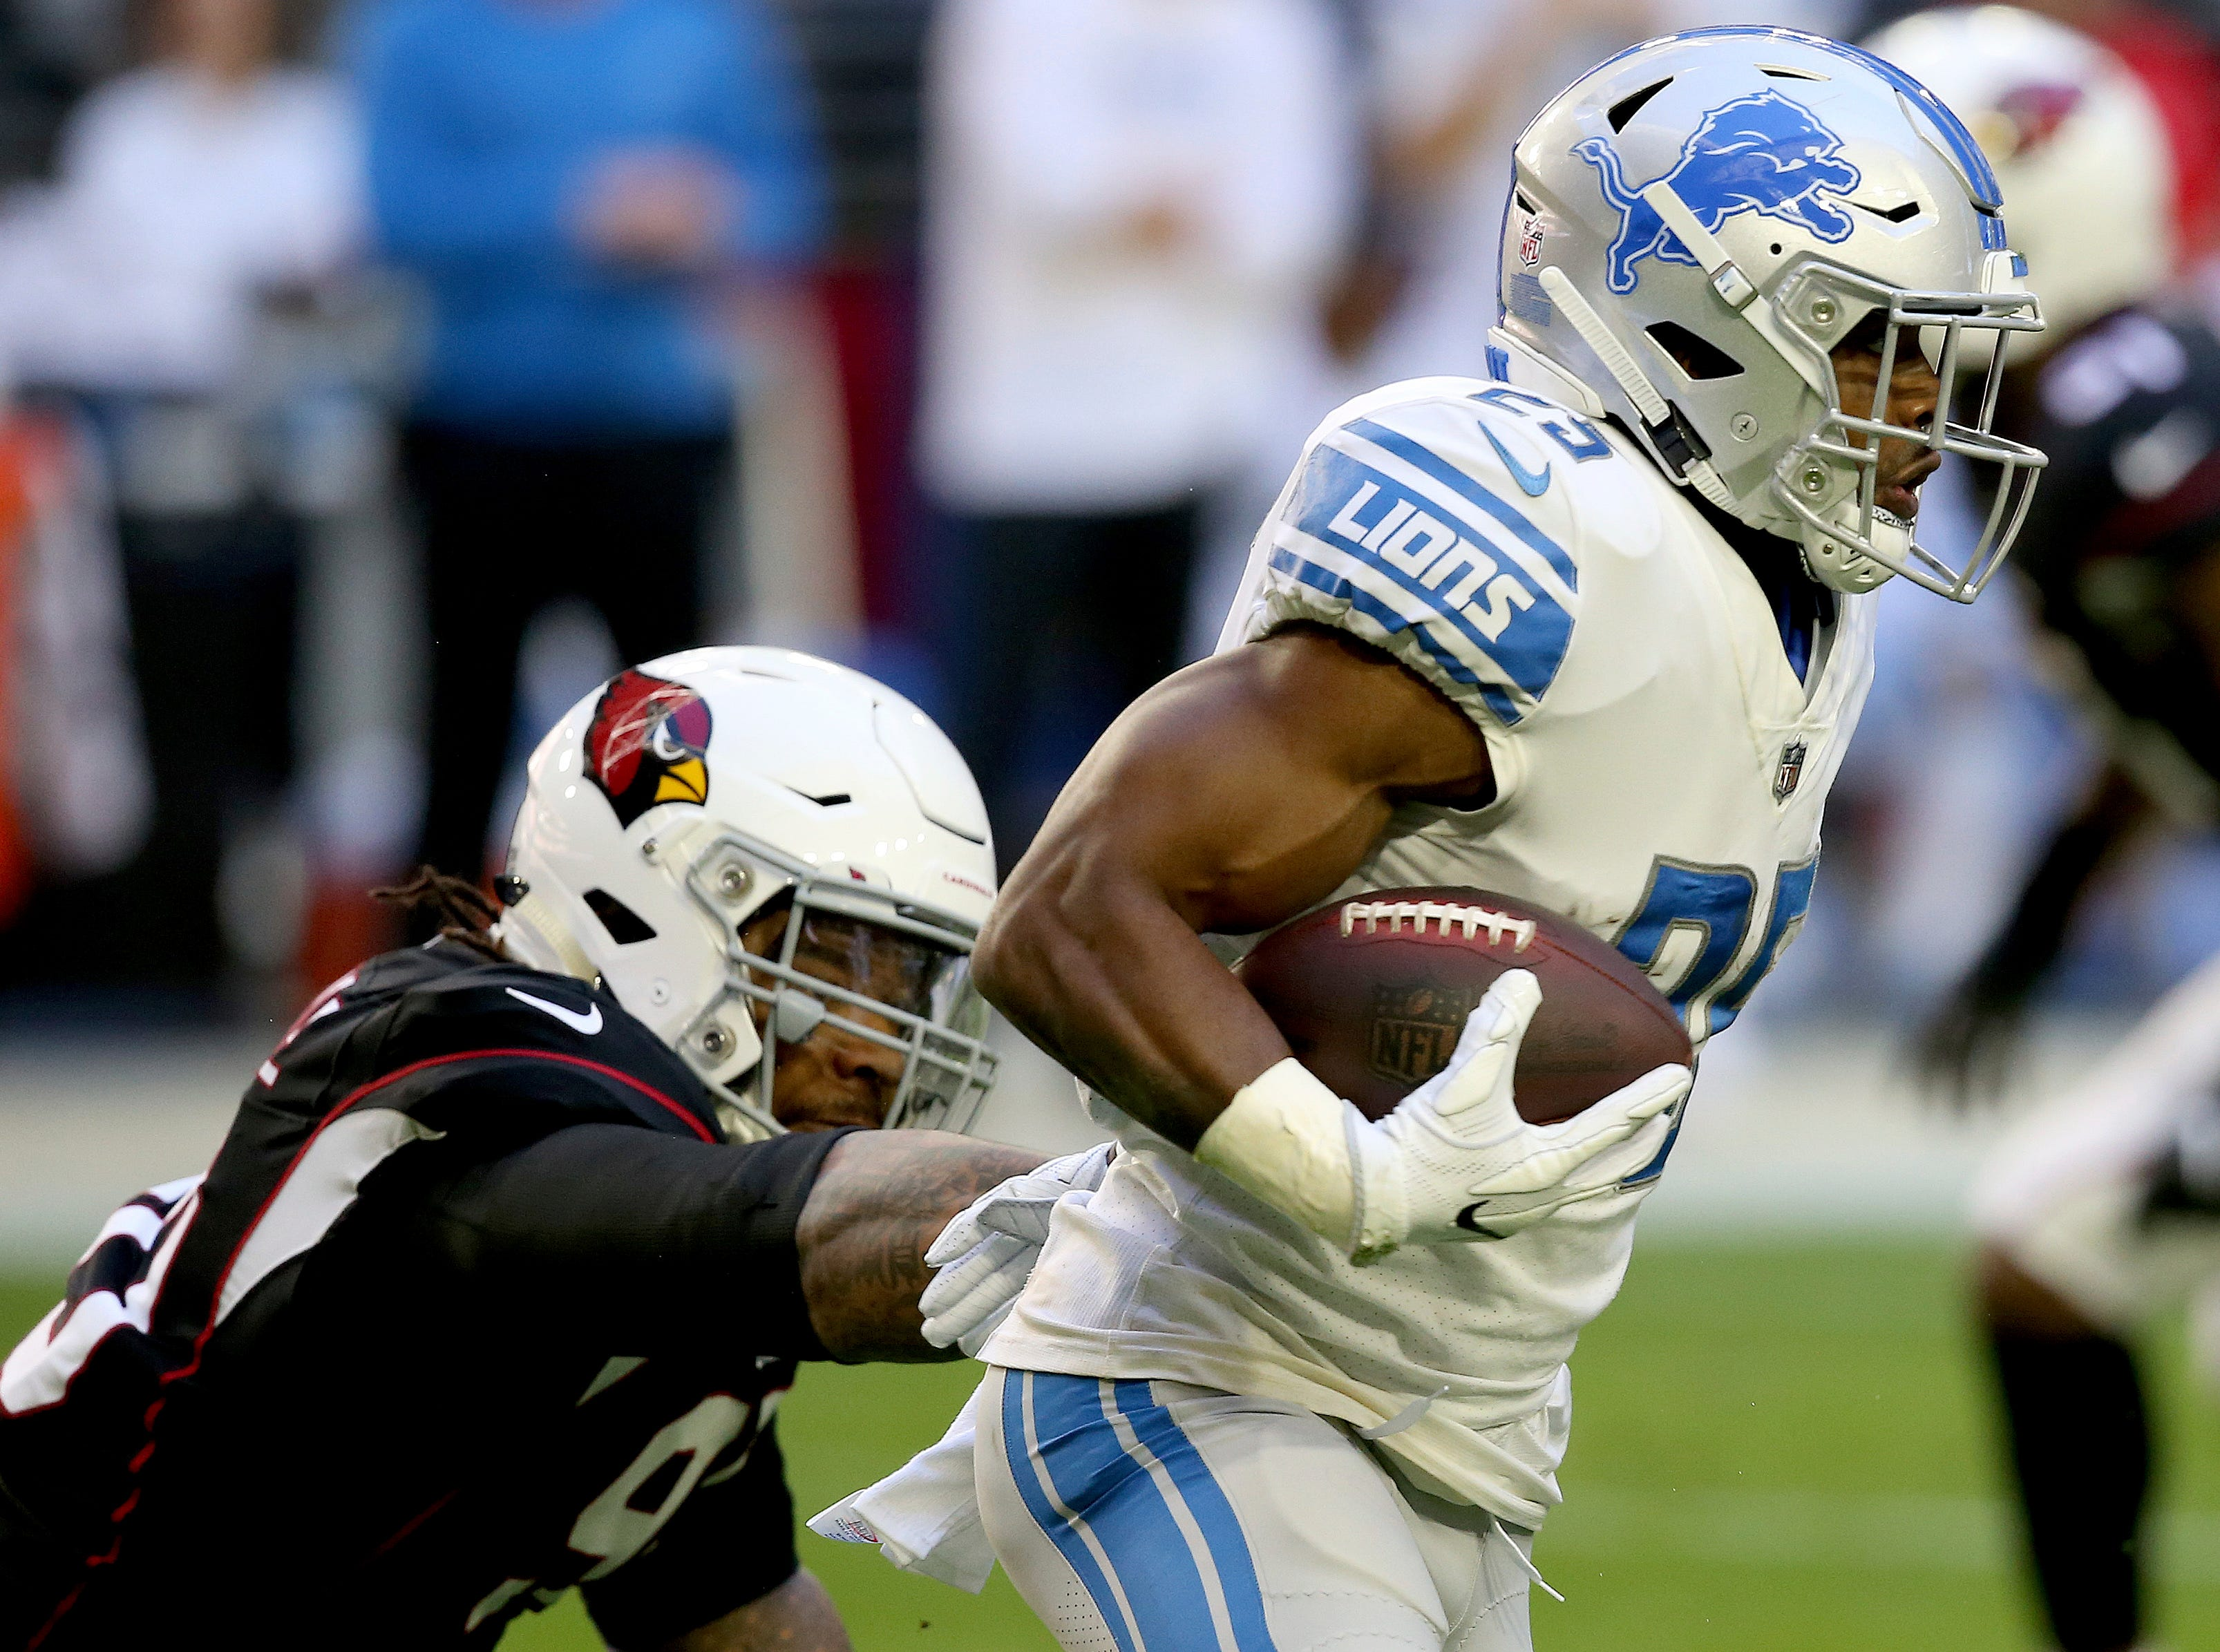 Detroit Lions running back Theo Riddick (25) runs as Arizona Cardinals defensive end Cameron Malveaux defends during the first half.